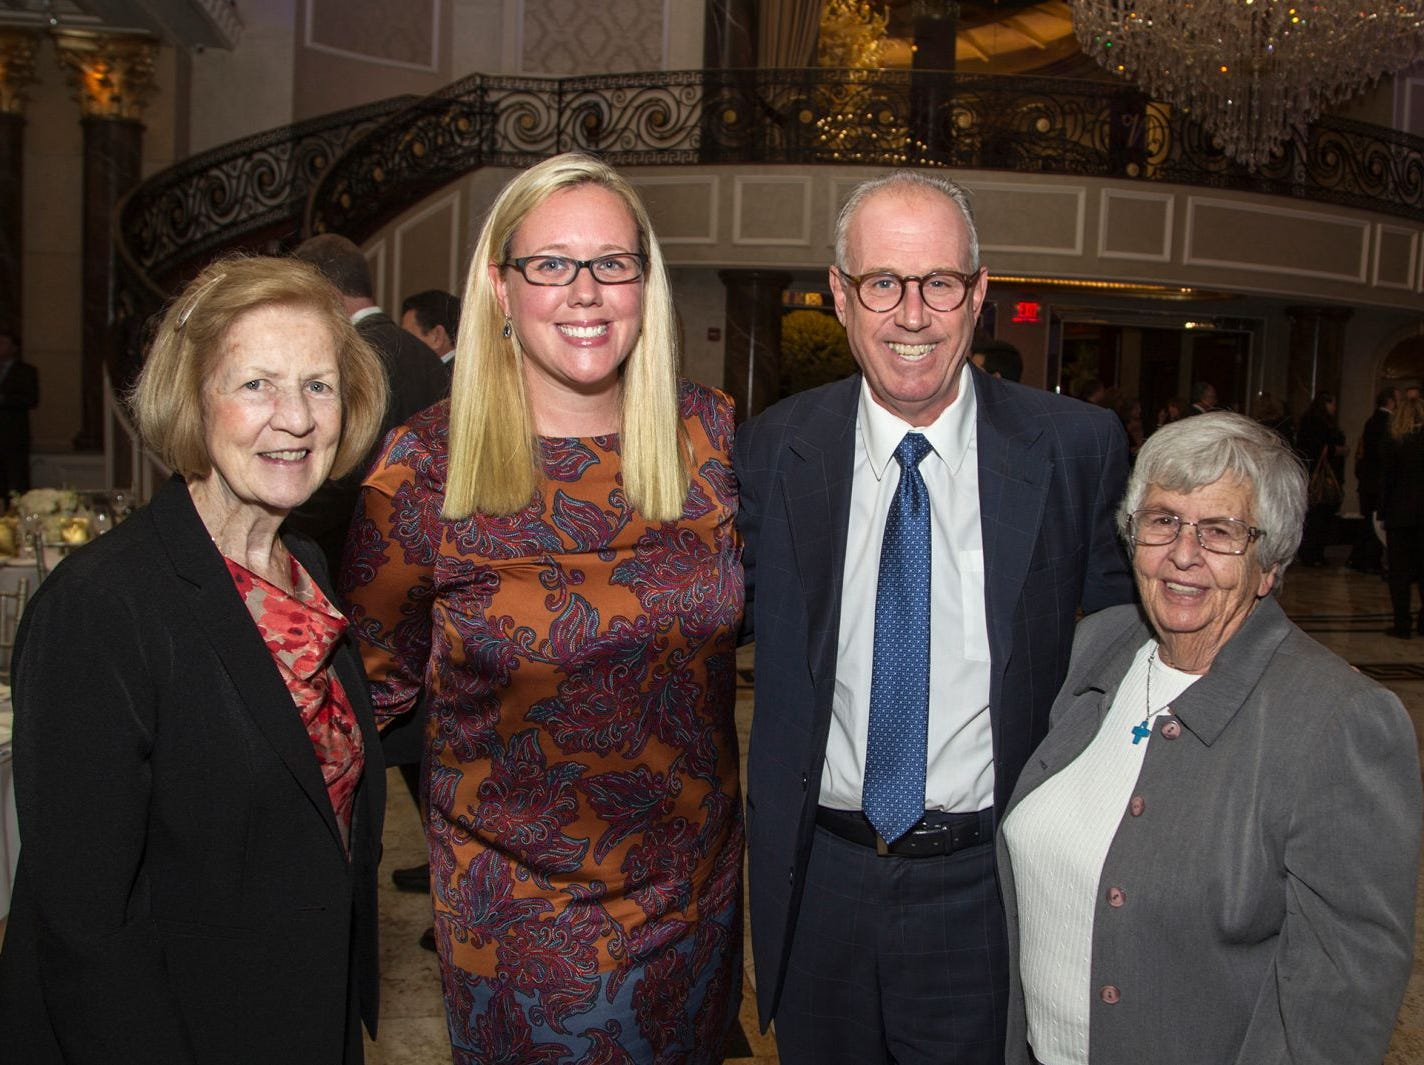 Sister Antoinette Moore, Molly McGarry, Joe Parisi, Sister Barbara Moran. Holy Name Medical Center held its 2018 MS Center Awards Reception at the Venetian in Garfield. 10/23/2018